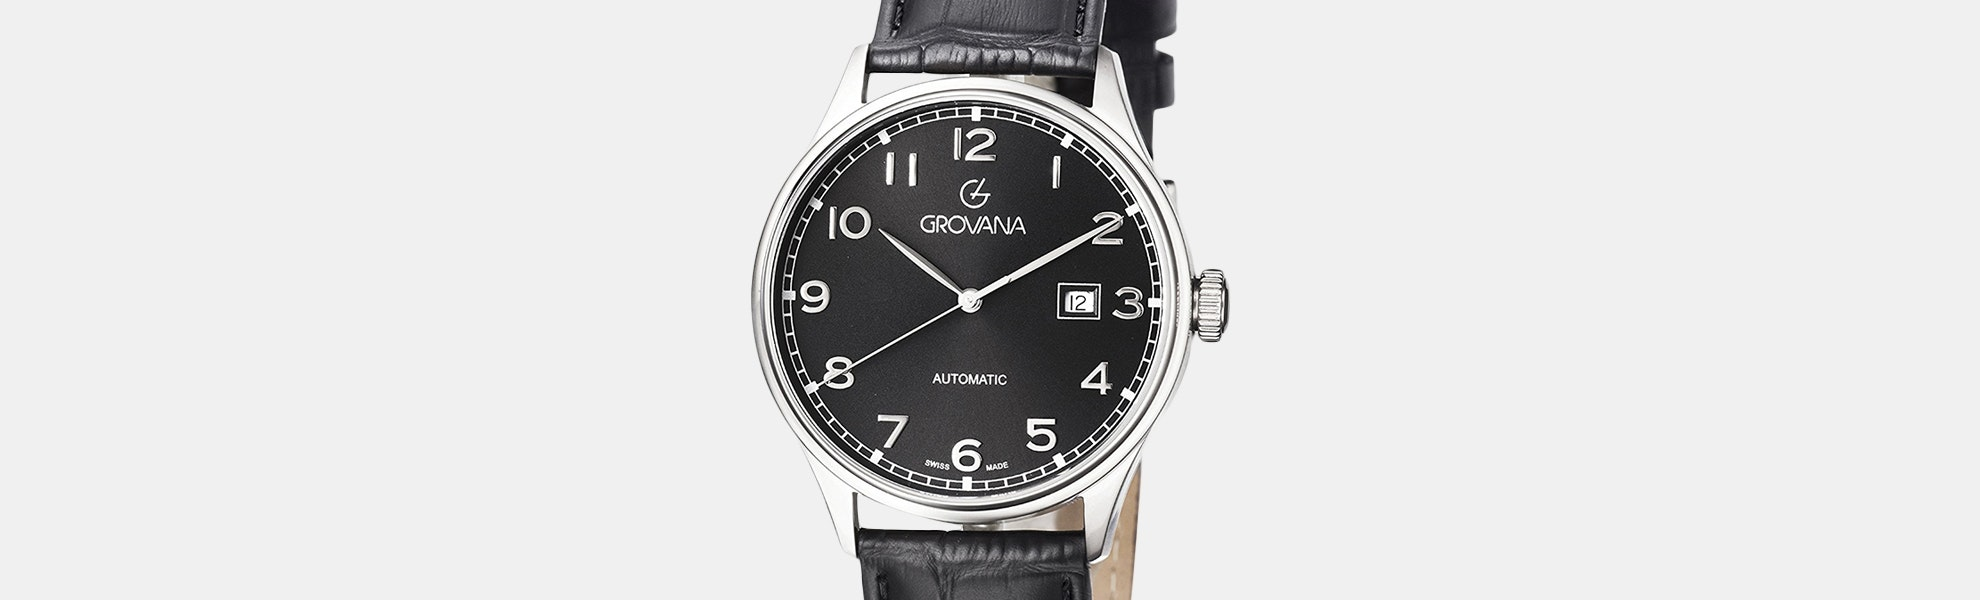 Grovana 1190 Automatic Watch